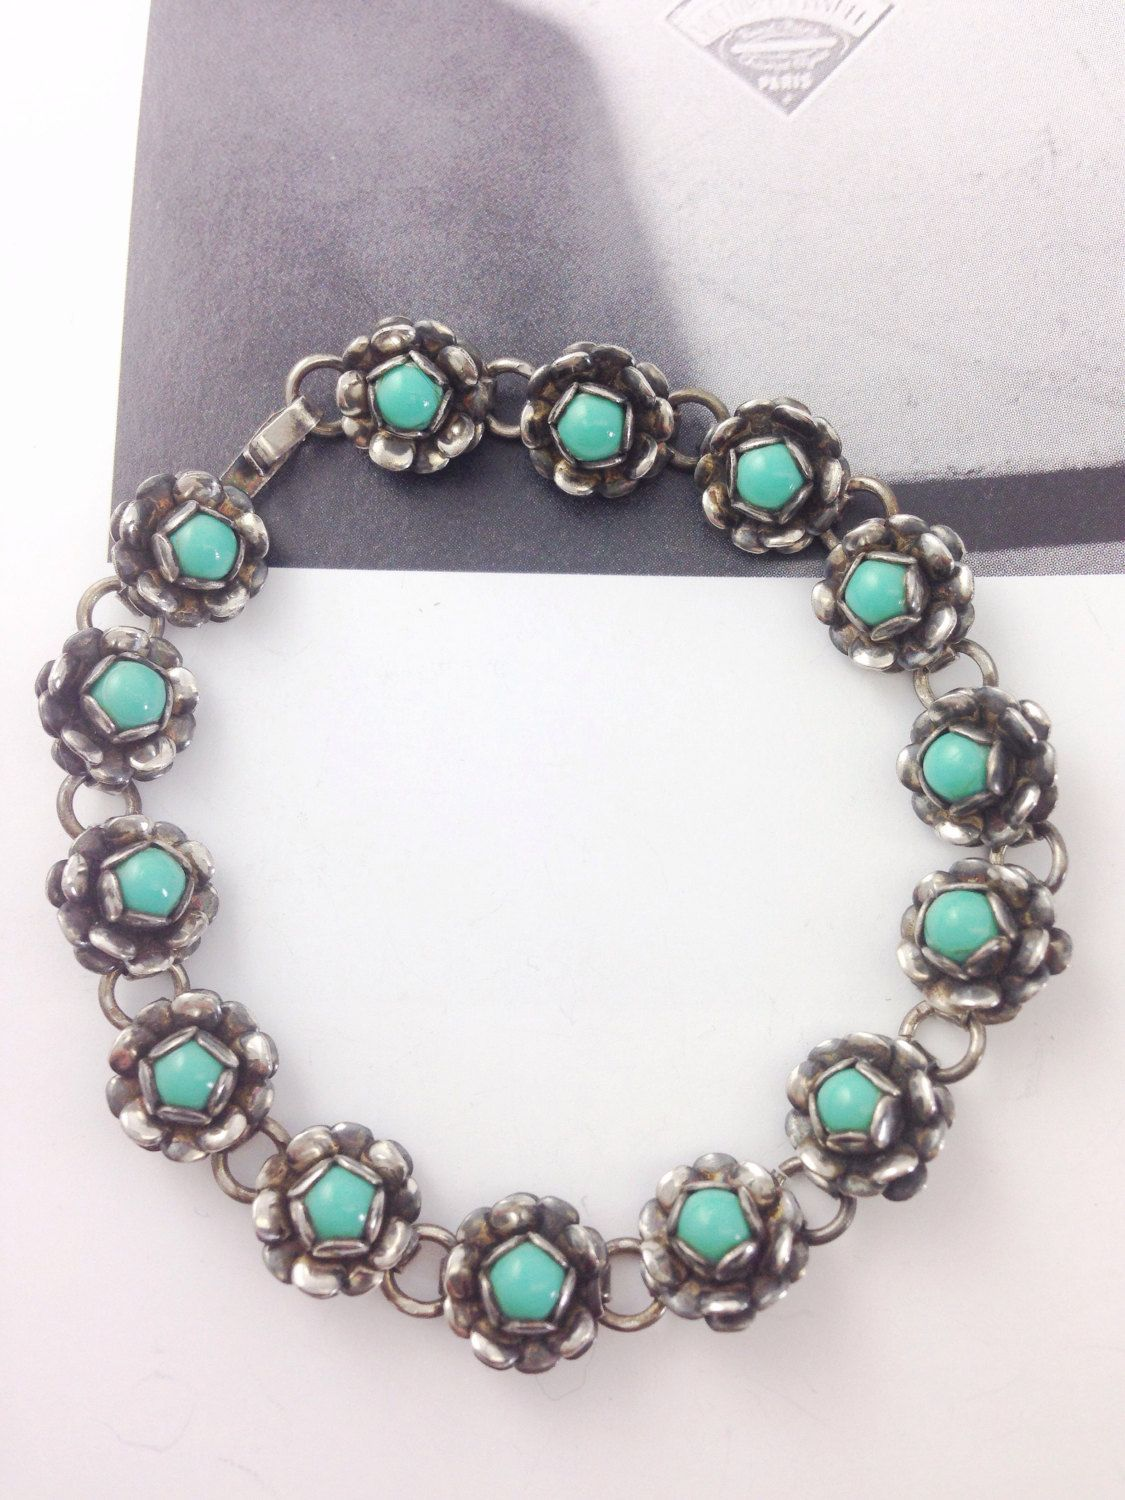 Isn't this perfect for summer? Mexican silver and turquoise flower bracelet from my Etsy shop https://www.etsy.com/listing/453400276/vintage-mexican-sterling-silver-flower